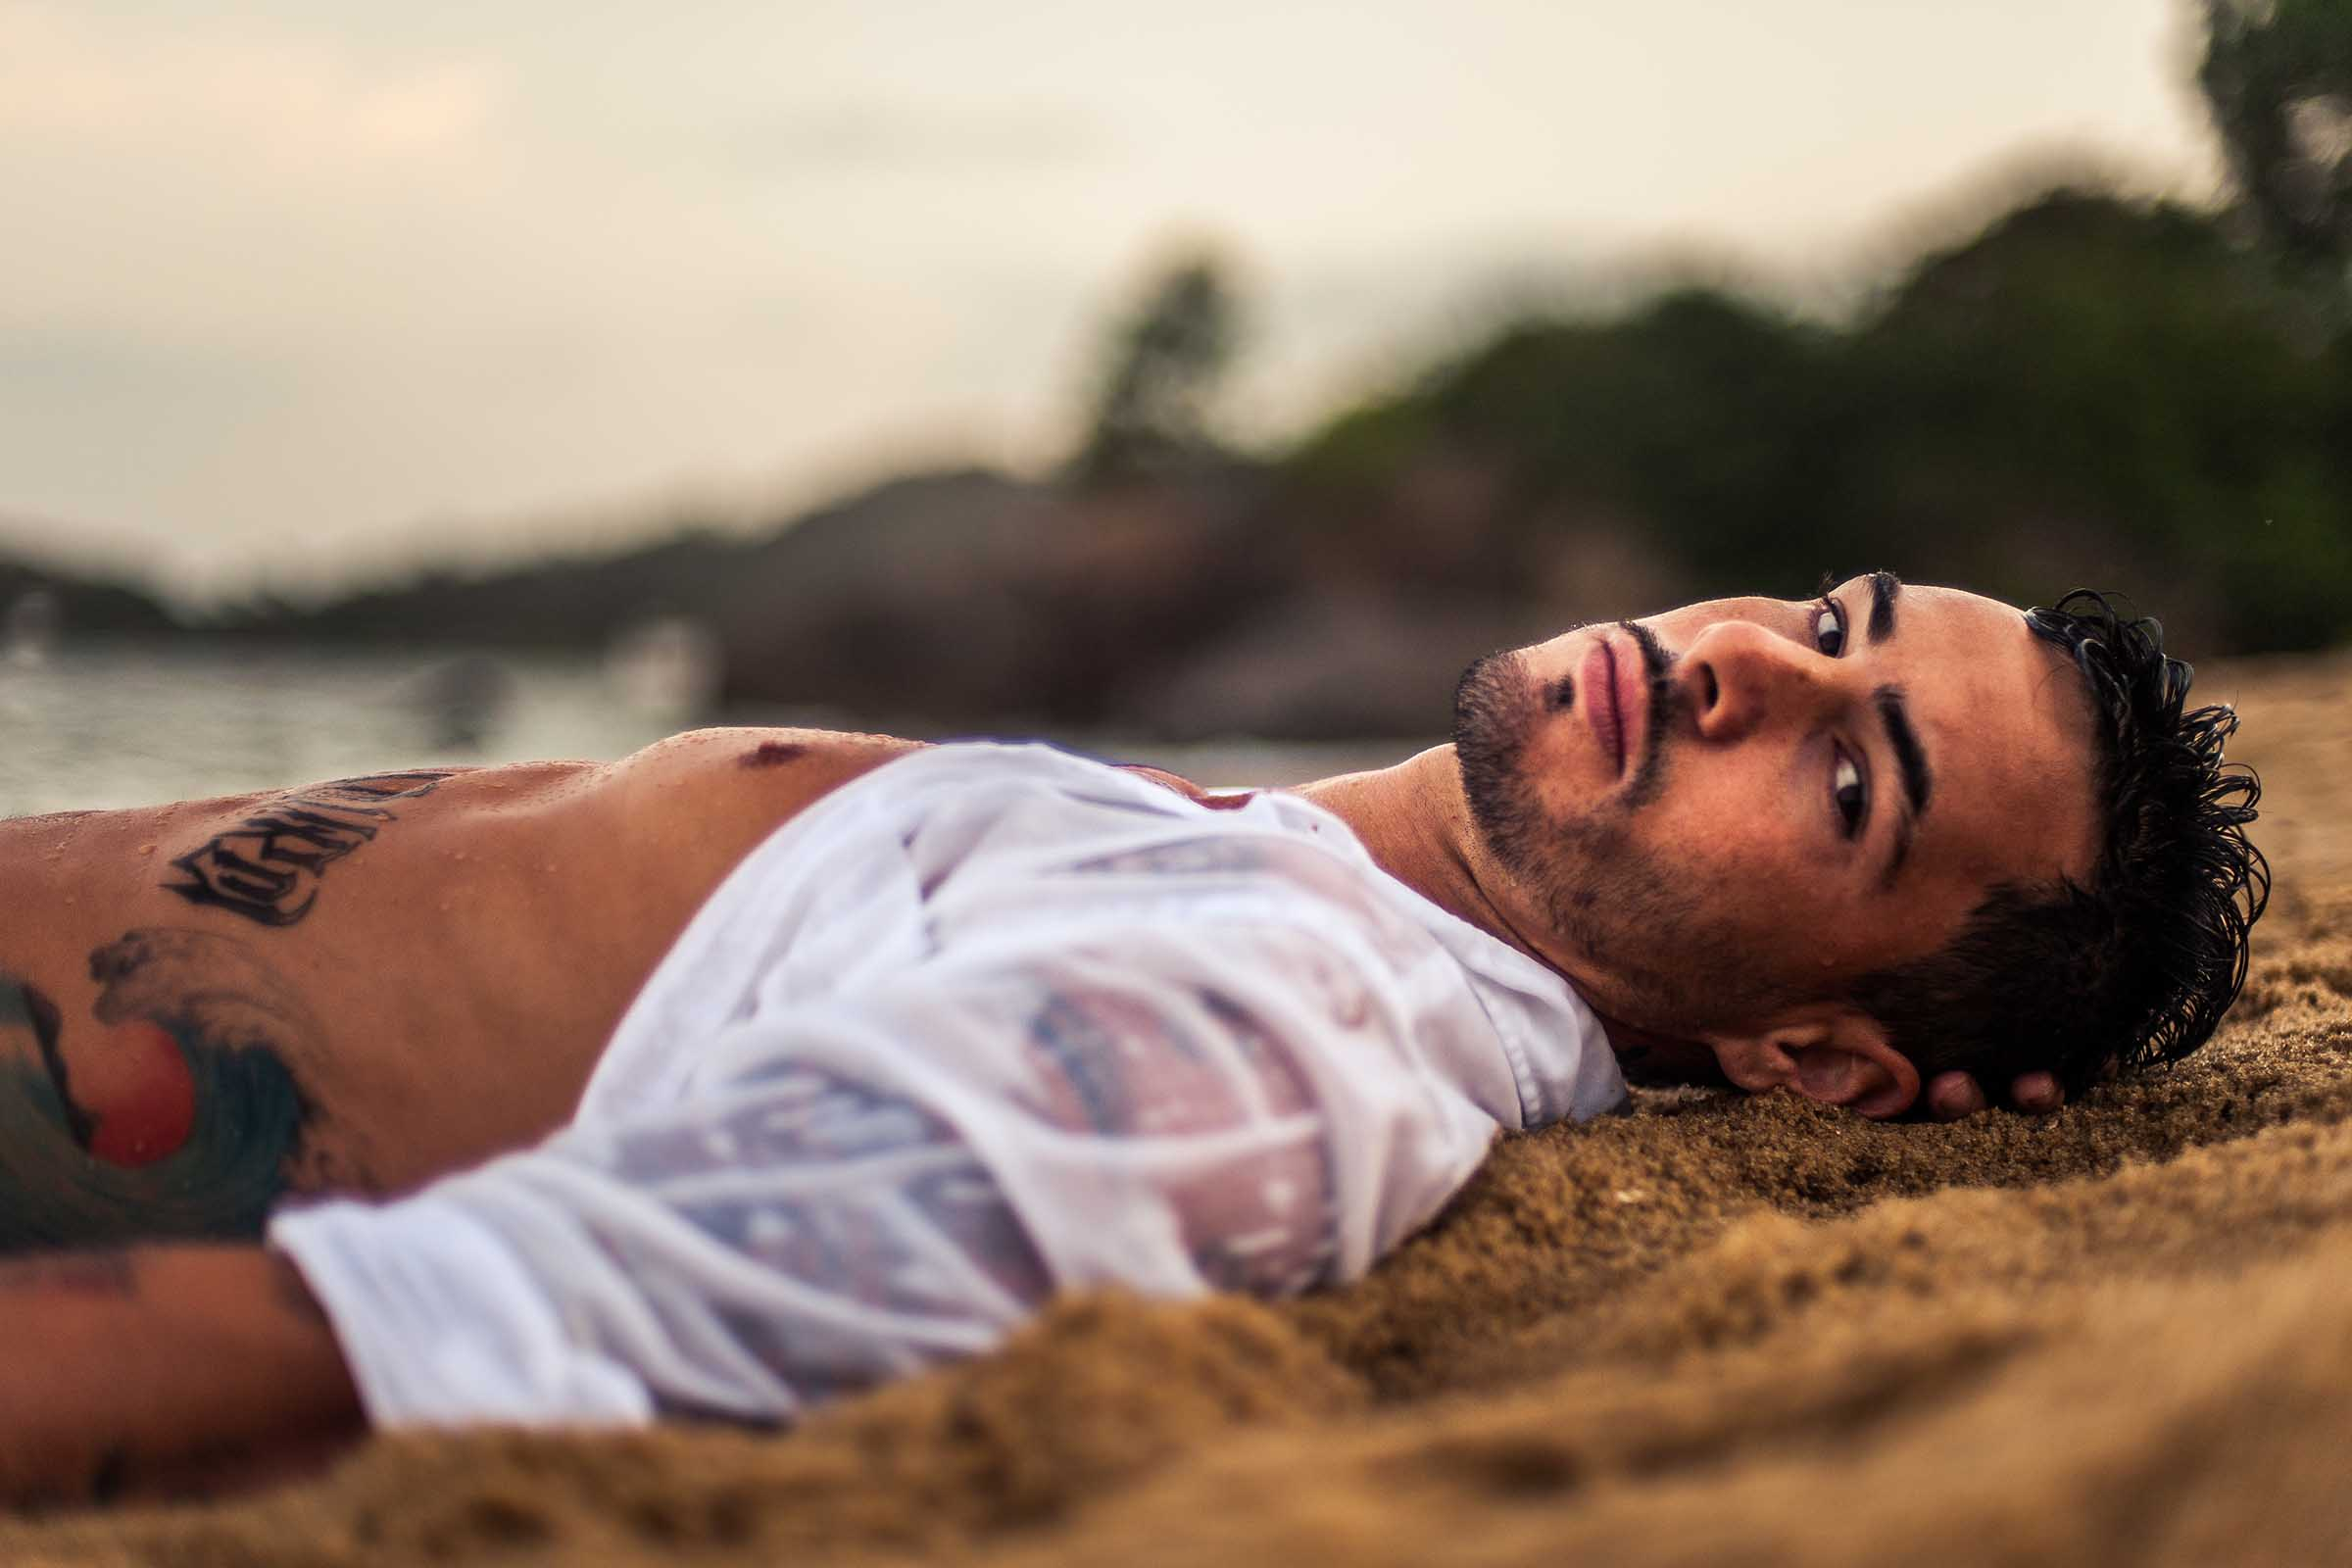 Victor Moura by Julio Tavares for Brazilian Male Model